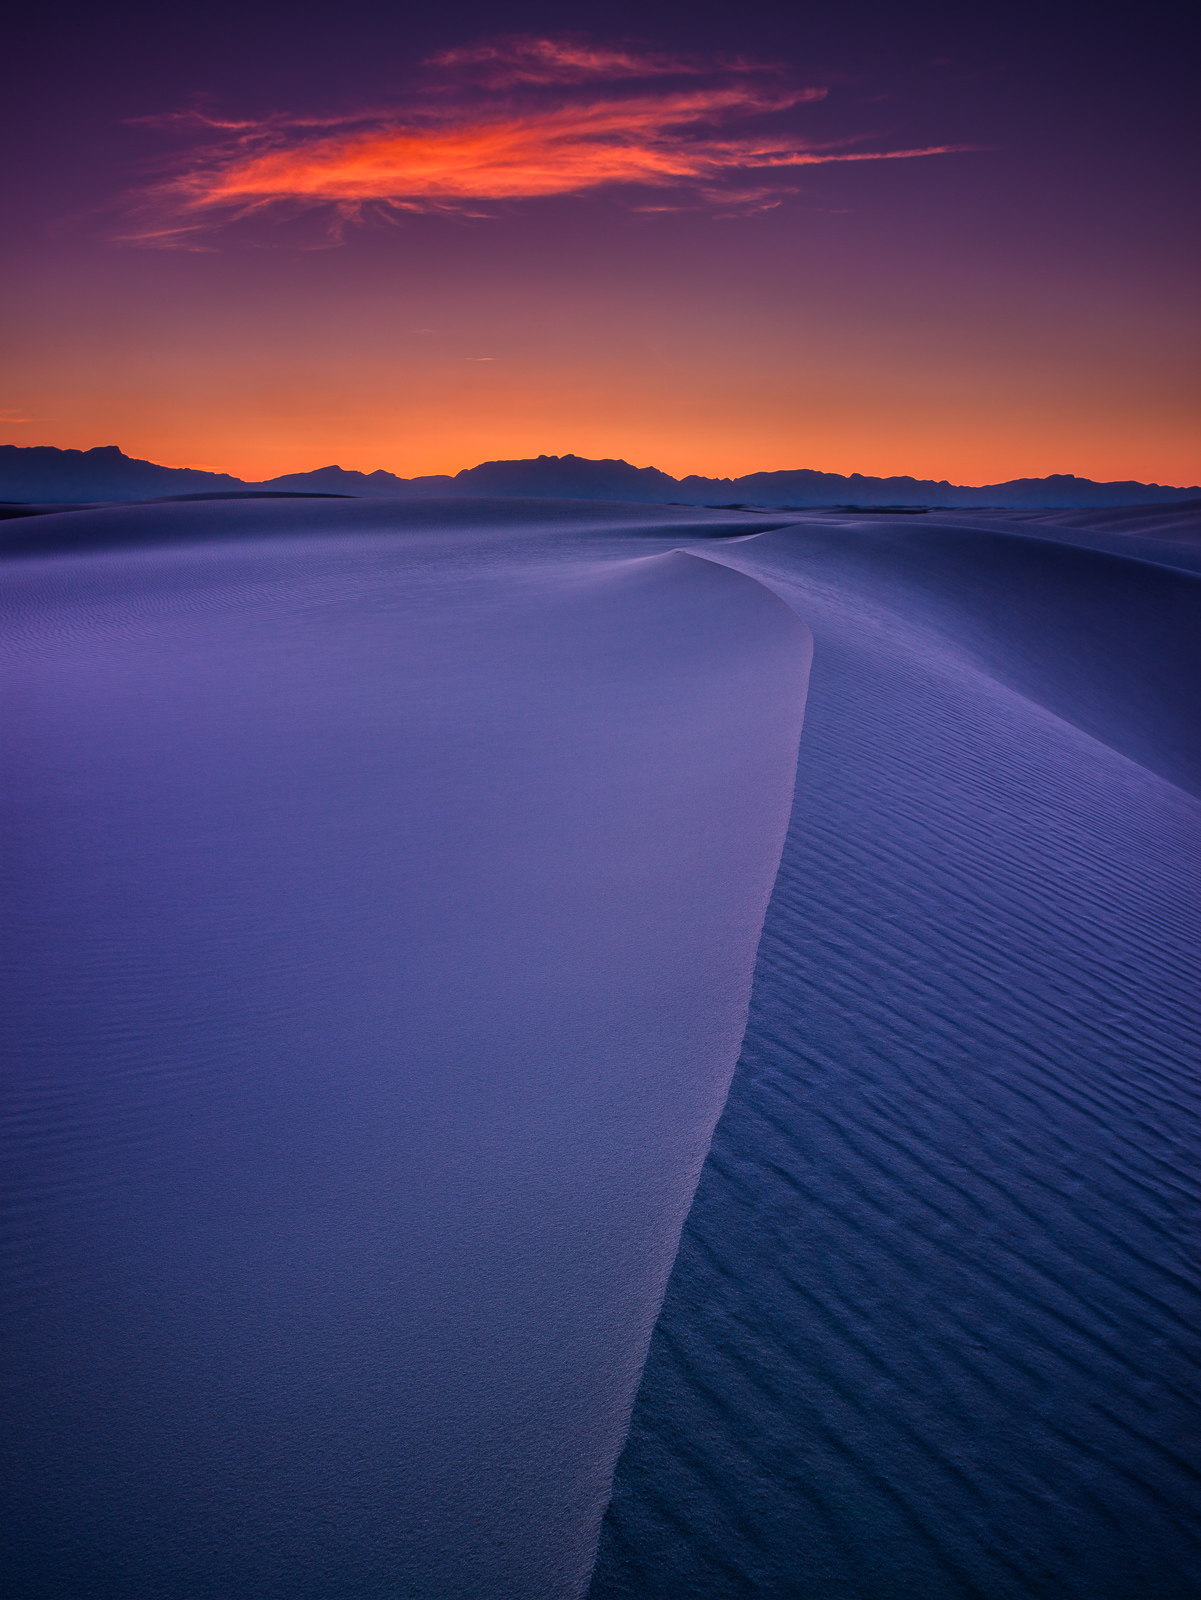 Orange Over Blue,Orange Over Blue,White Sands National Monument, New Mexico,Sunset,Sand,World,Sunrise, photo